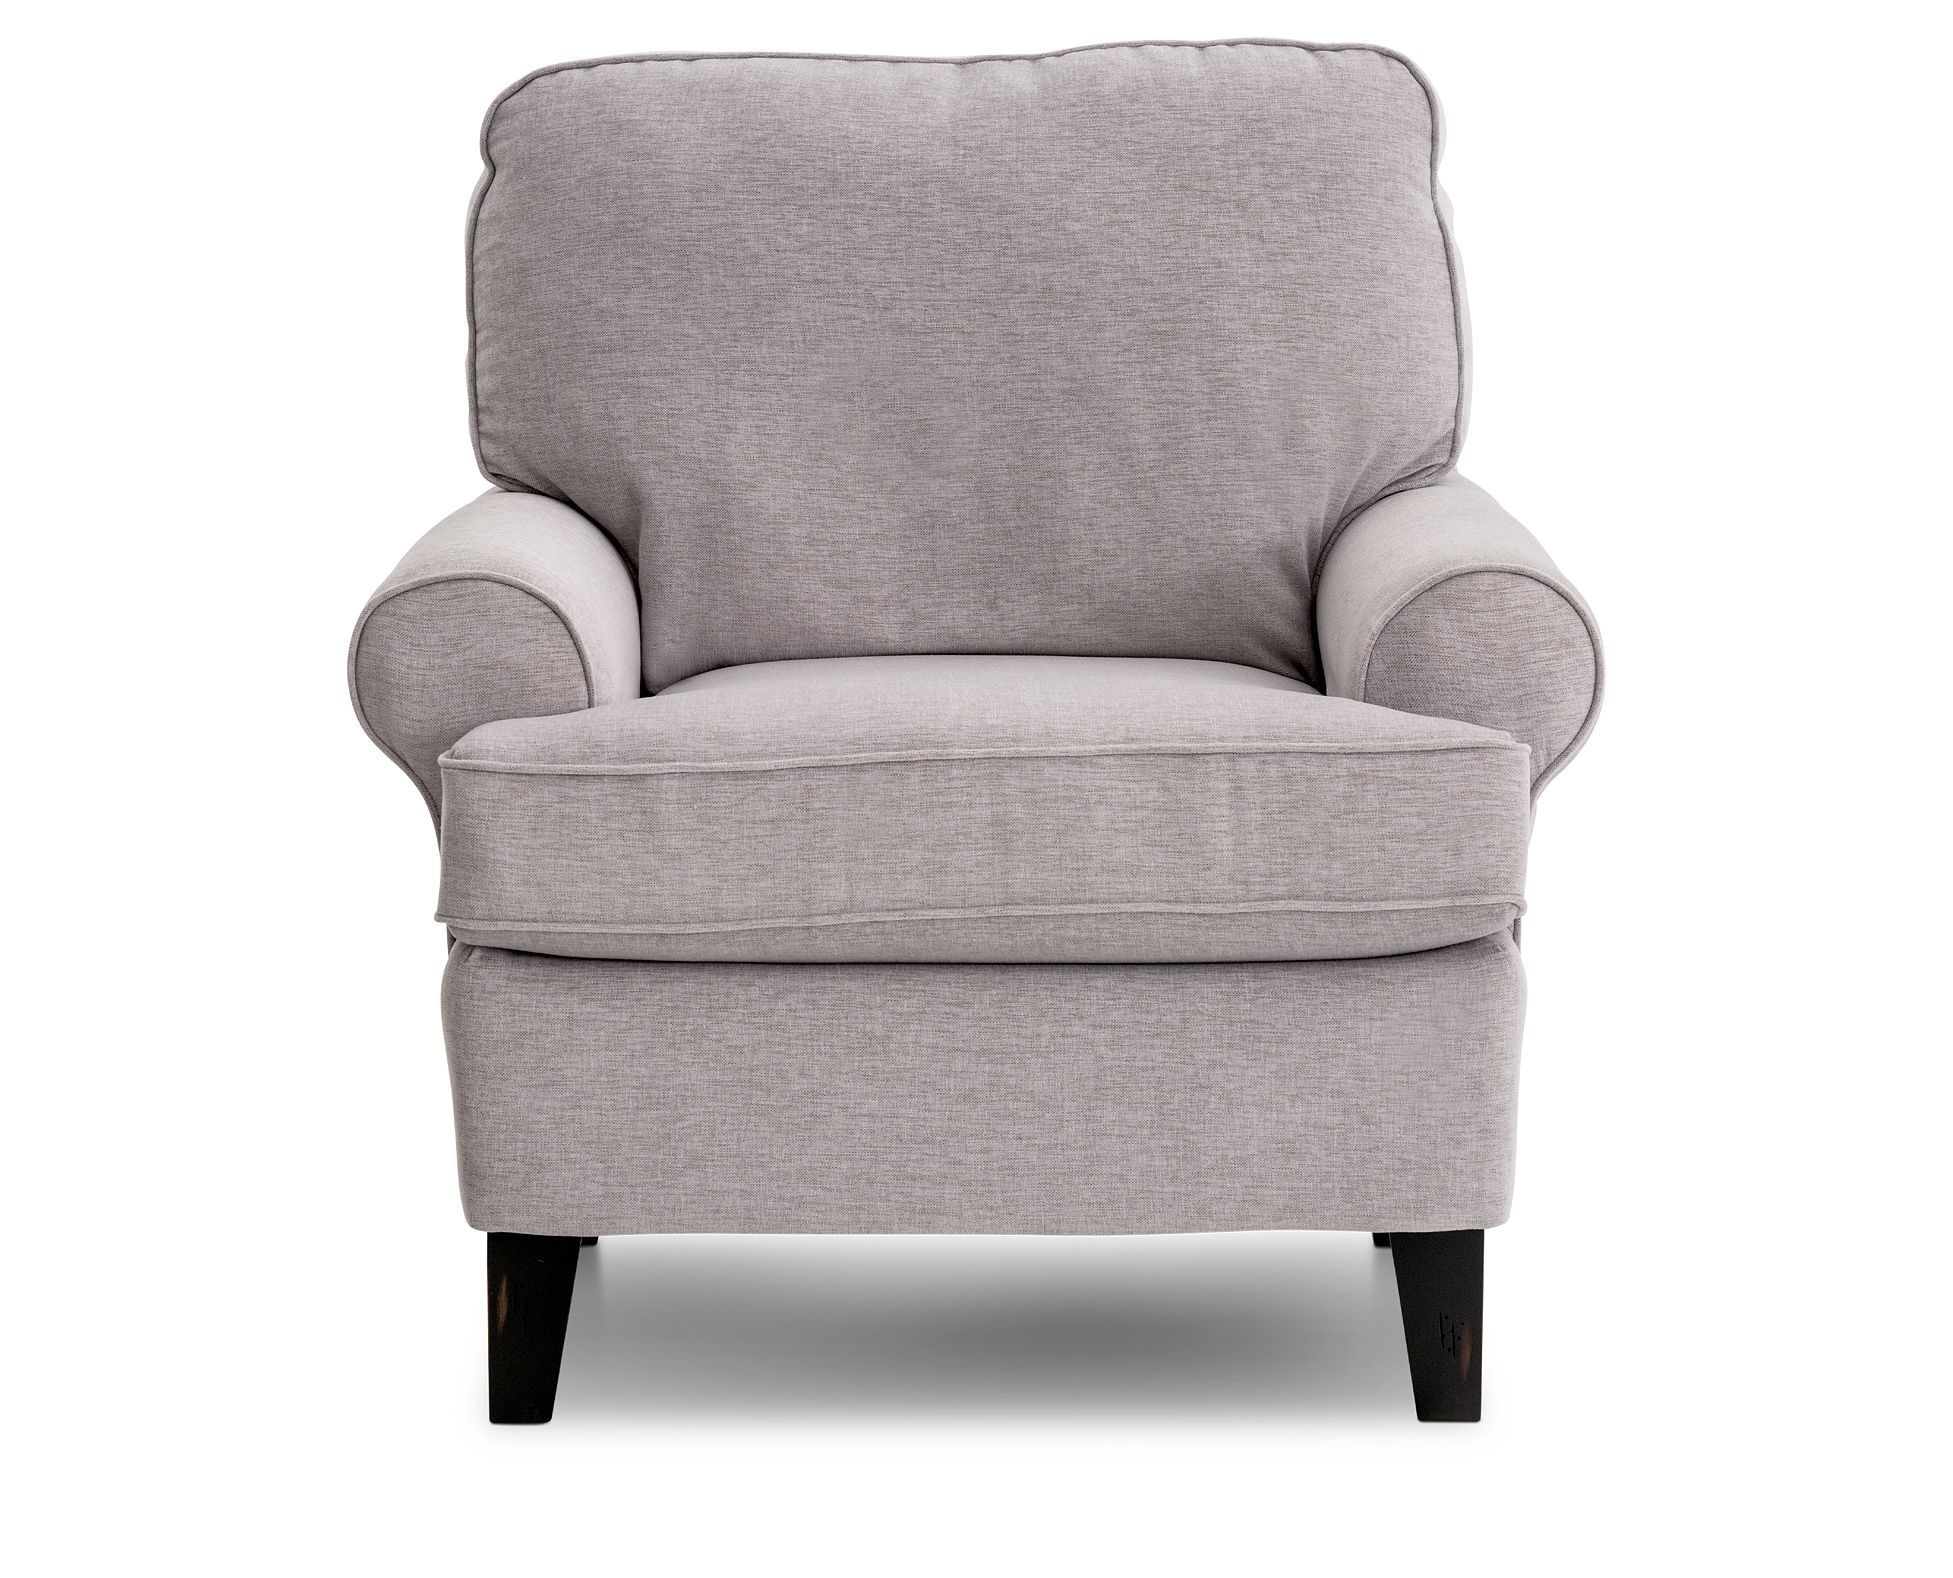 Owen Accent Chair Accent Chairs Blue Chairs Living Room Chair